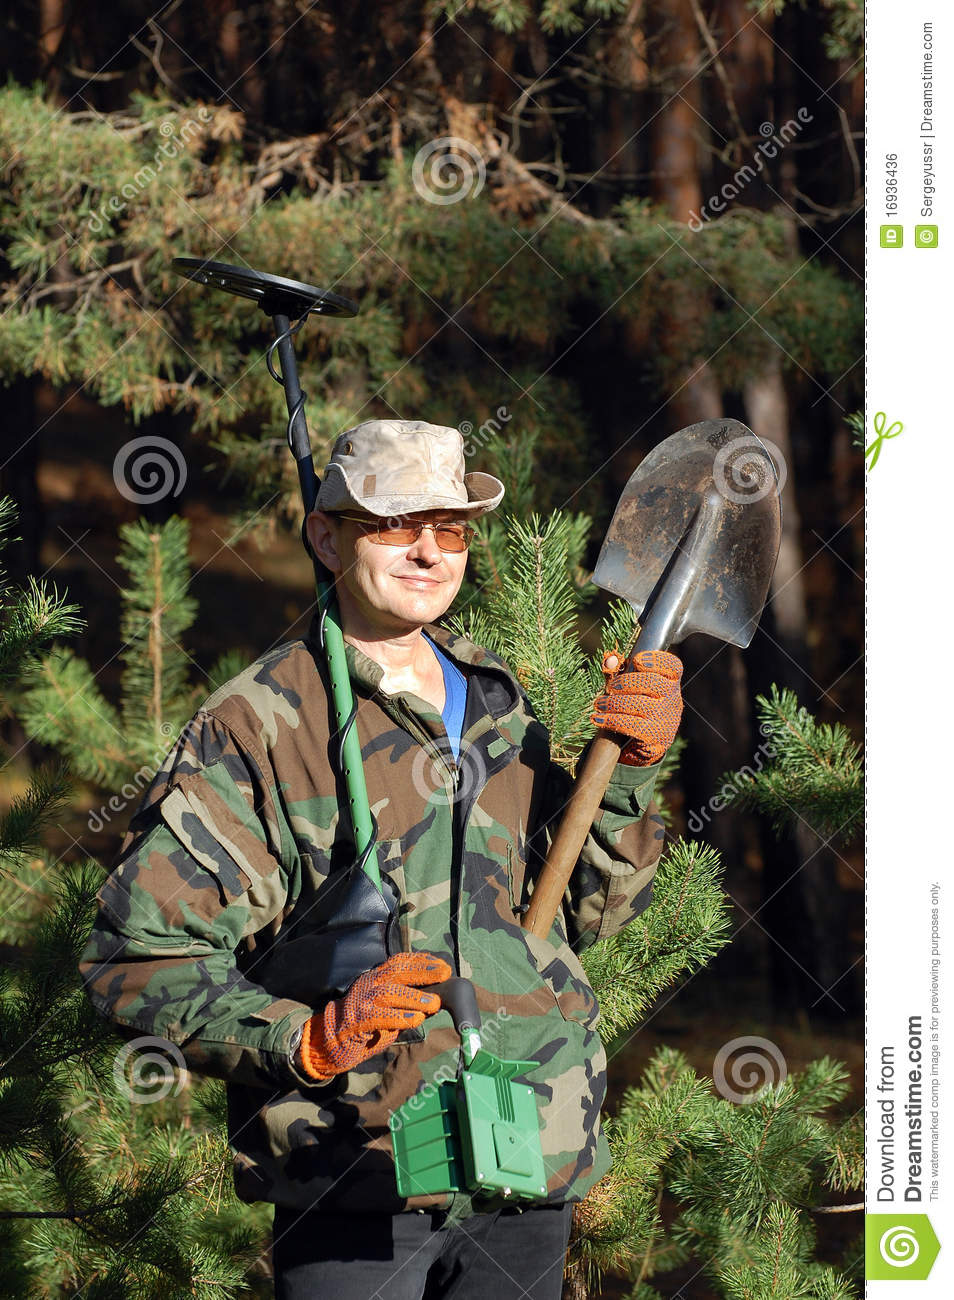 Jew Detector: Man With Metal Detector Royalty Free Stock Image